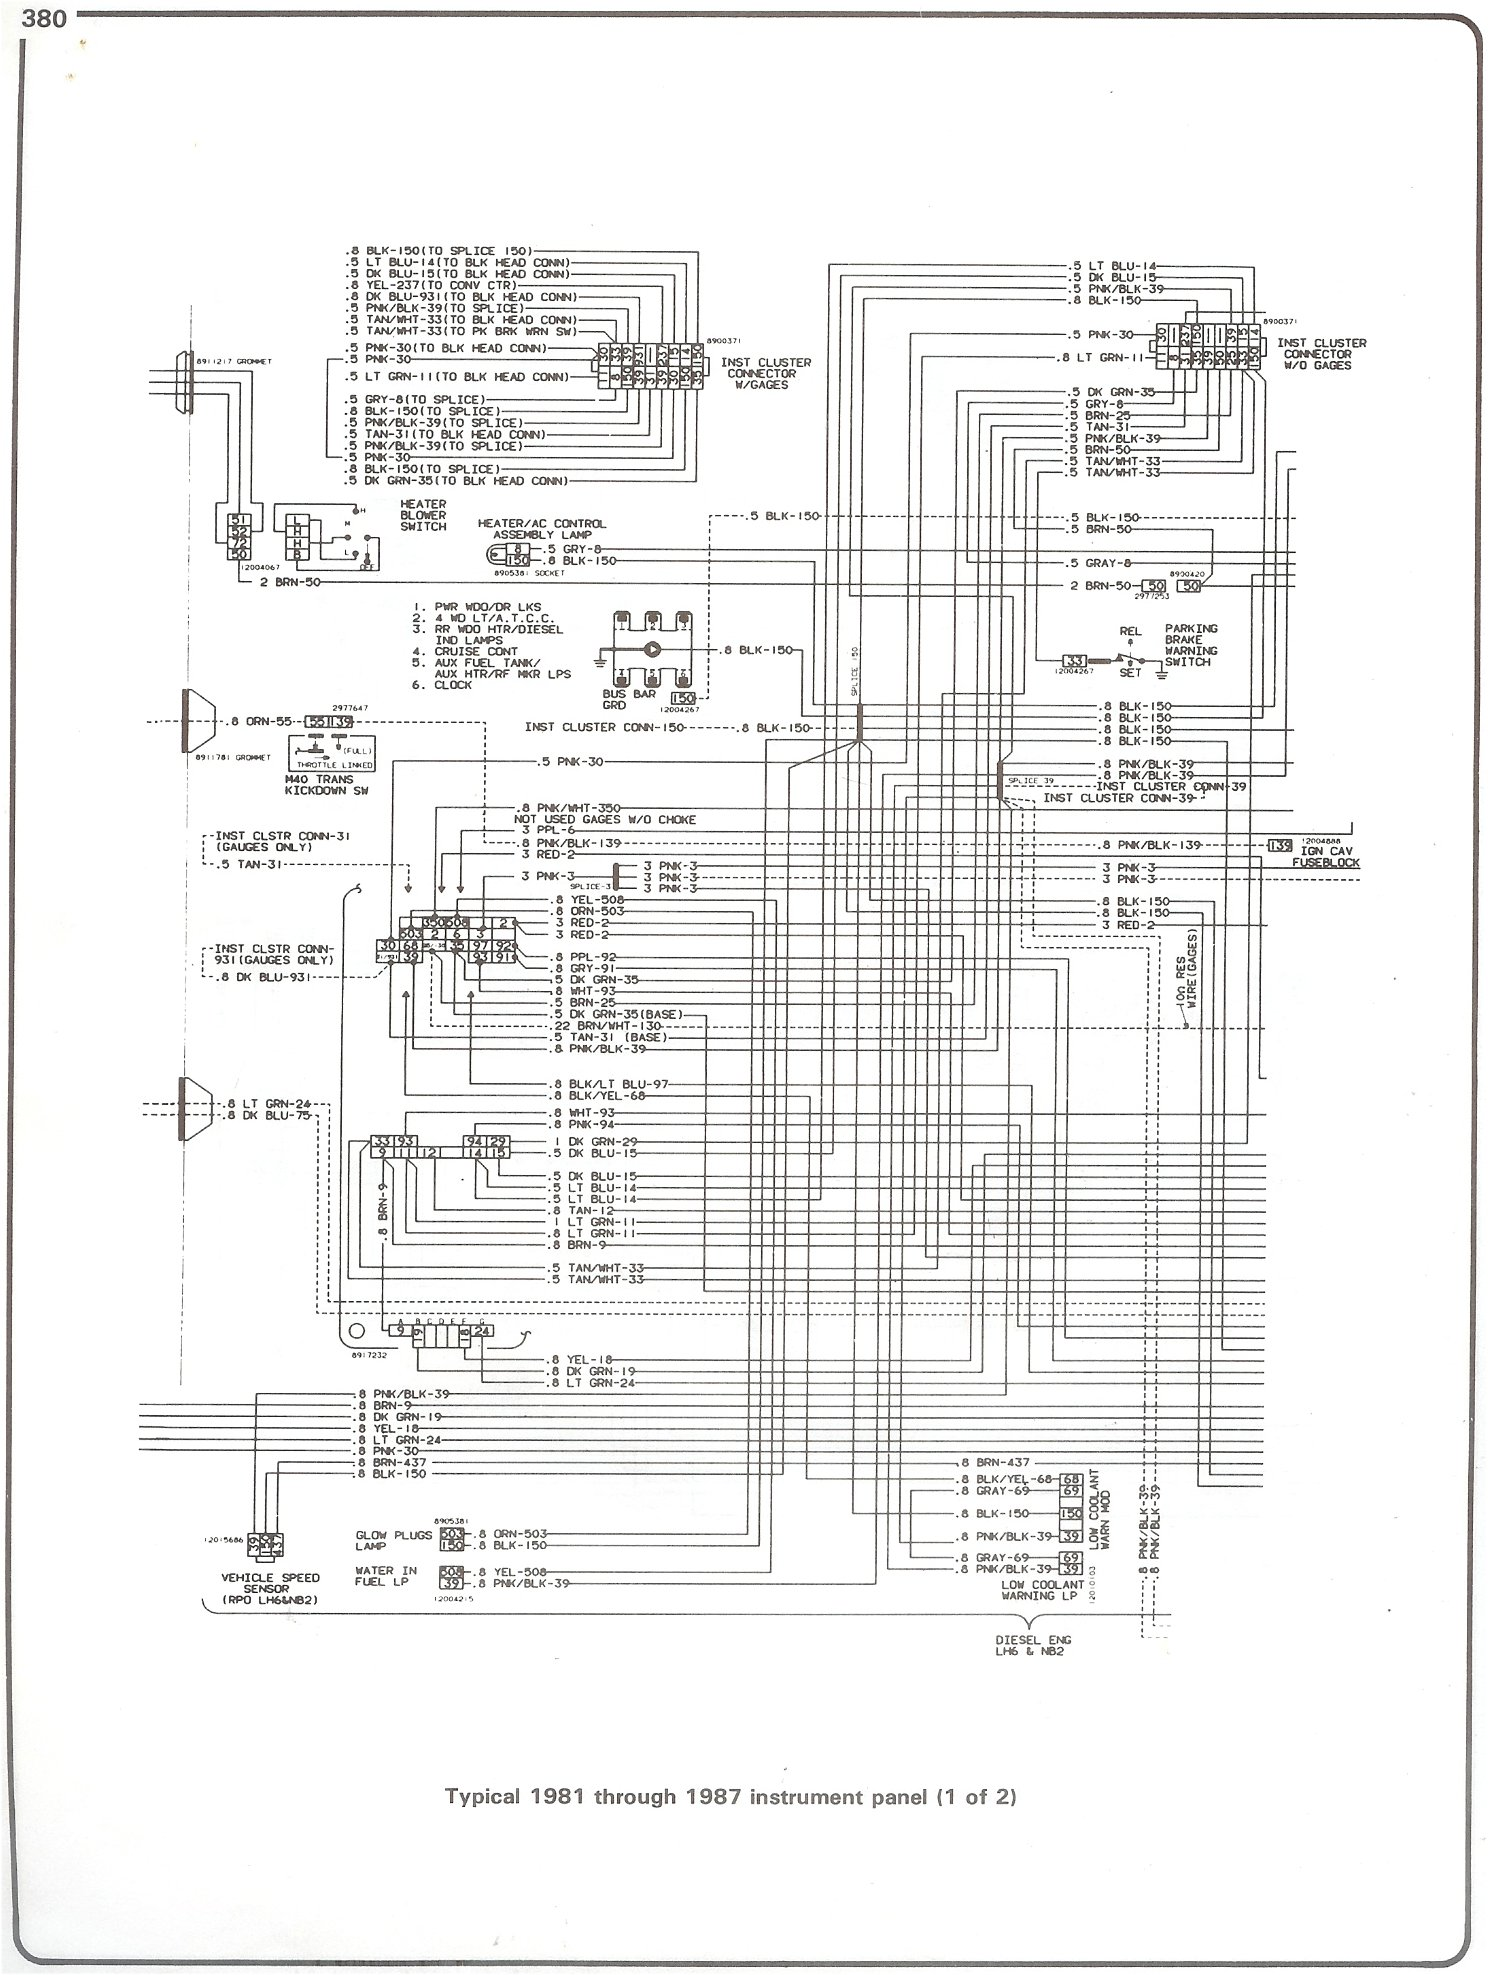 81 87_instrument_pg1 1984 chevy c10 wiring diagram 68 chevy c10 wiring diagram \u2022 wiring 1989 chevy truck wiring diagram at reclaimingppi.co